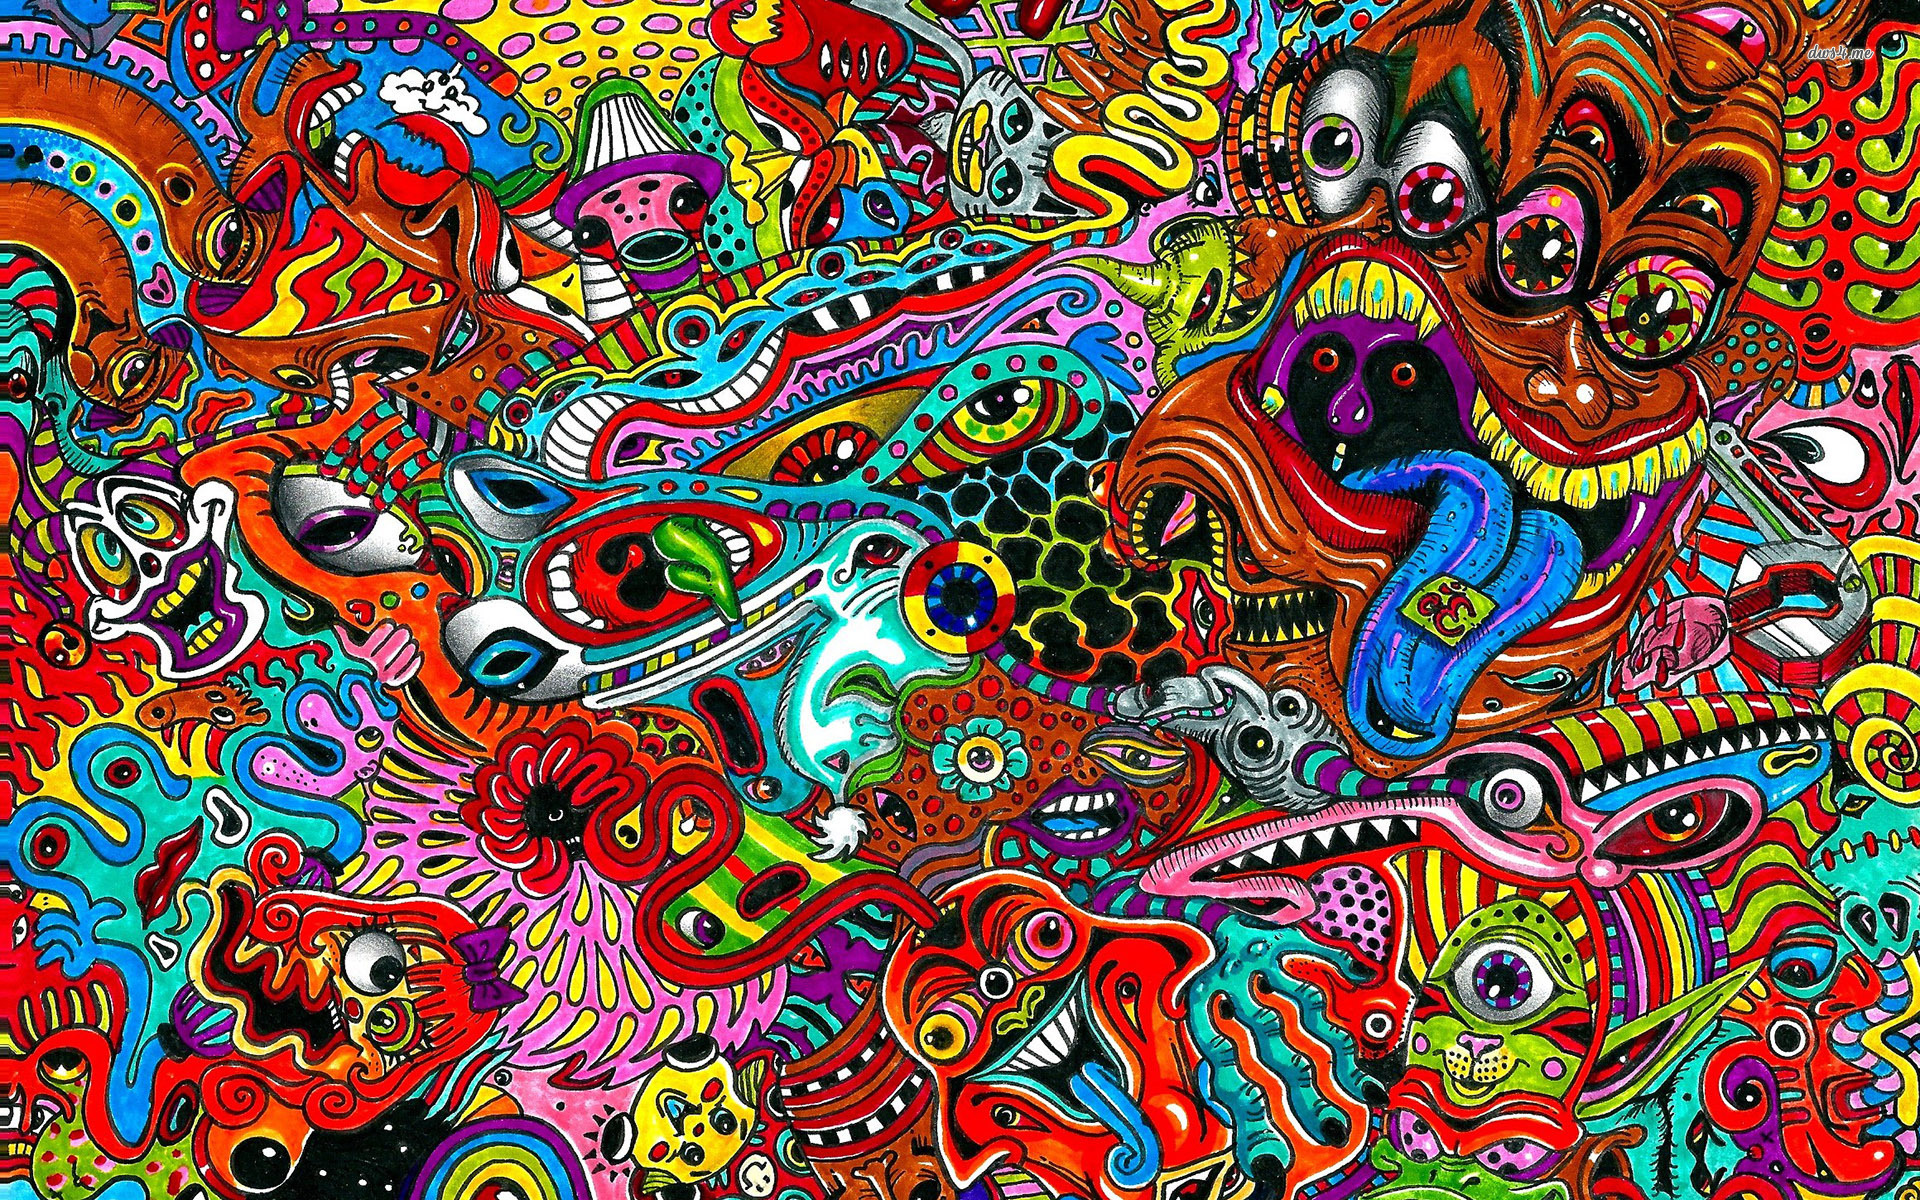 Psychedelic #7